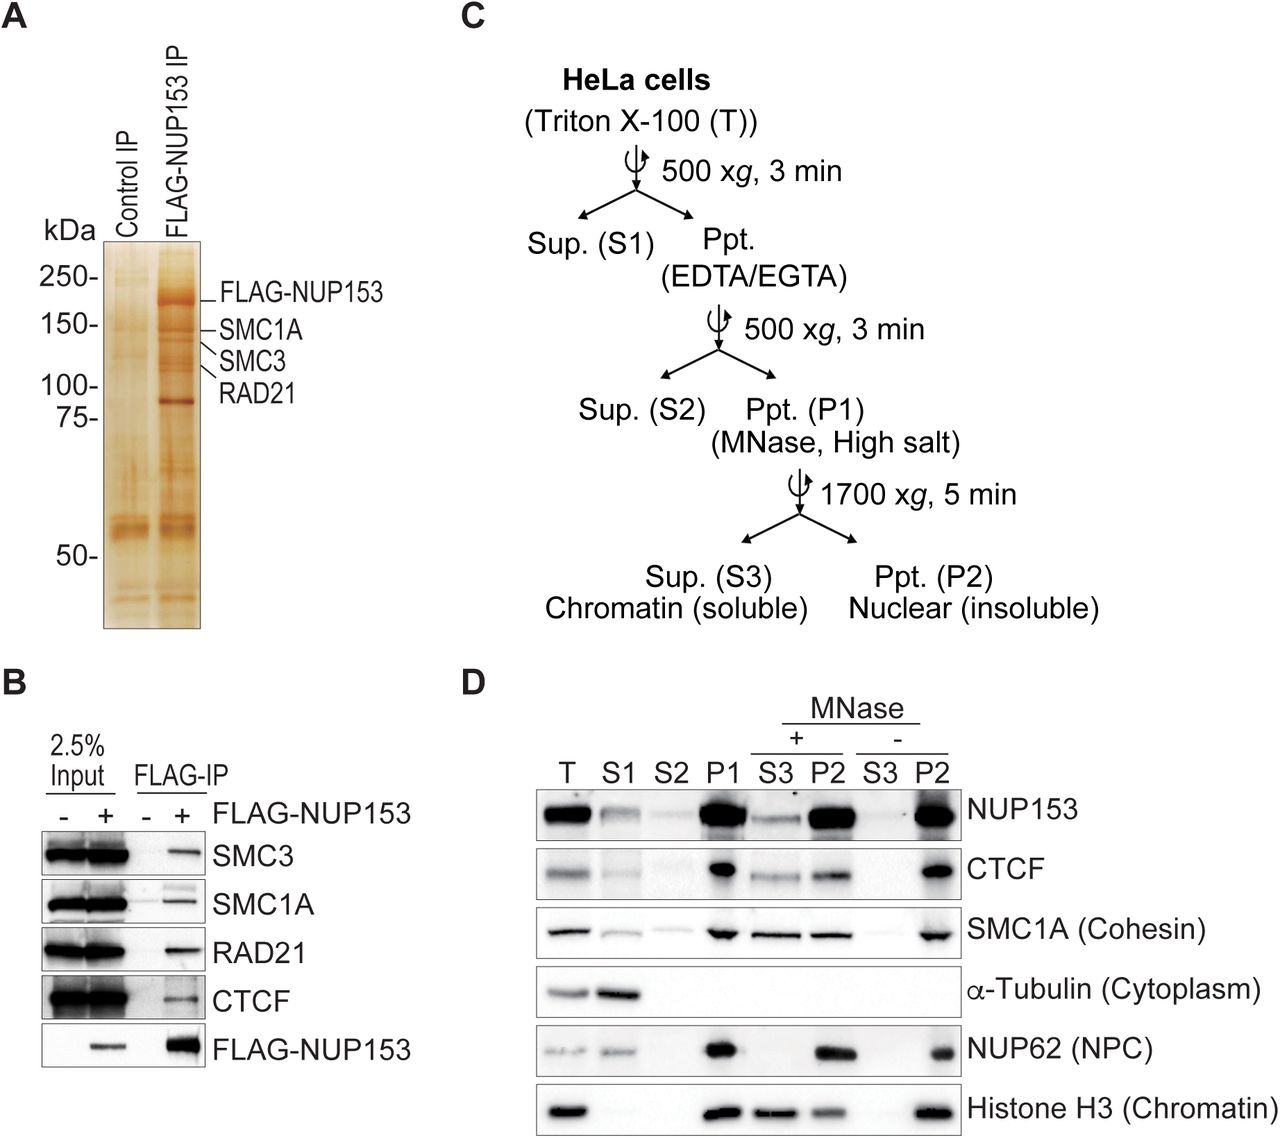 NUP153 interacts with CTCF and cohesin. (A) Silver stain showing proteins that IP with FLAG-NUP153. (B) Co-IP shows FLAG-NUP153 interaction with CTCF, and cohesin subunits, SMC3, SMC1A, RAD21. NUP153 was pulled down using anti-FLAG antibody (Ab). (C) Schematic showing steps of chromatin fractionation assay in HeLa cells. (D) NUP153 was detected in the nuclear insoluble fraction (P2) along with CTCF and cohesin. NUP153 detected in the chromatin-associated soluble fraction (S3) following micrococcal nuclease (MNase) treatment of P1 fraction. Ppt, precipitate; Sup, supernatant; Nucleoporin 62, NUP62; Loading controls: α -Tubulin (cytoplasm), Histone H3 (chromatin).